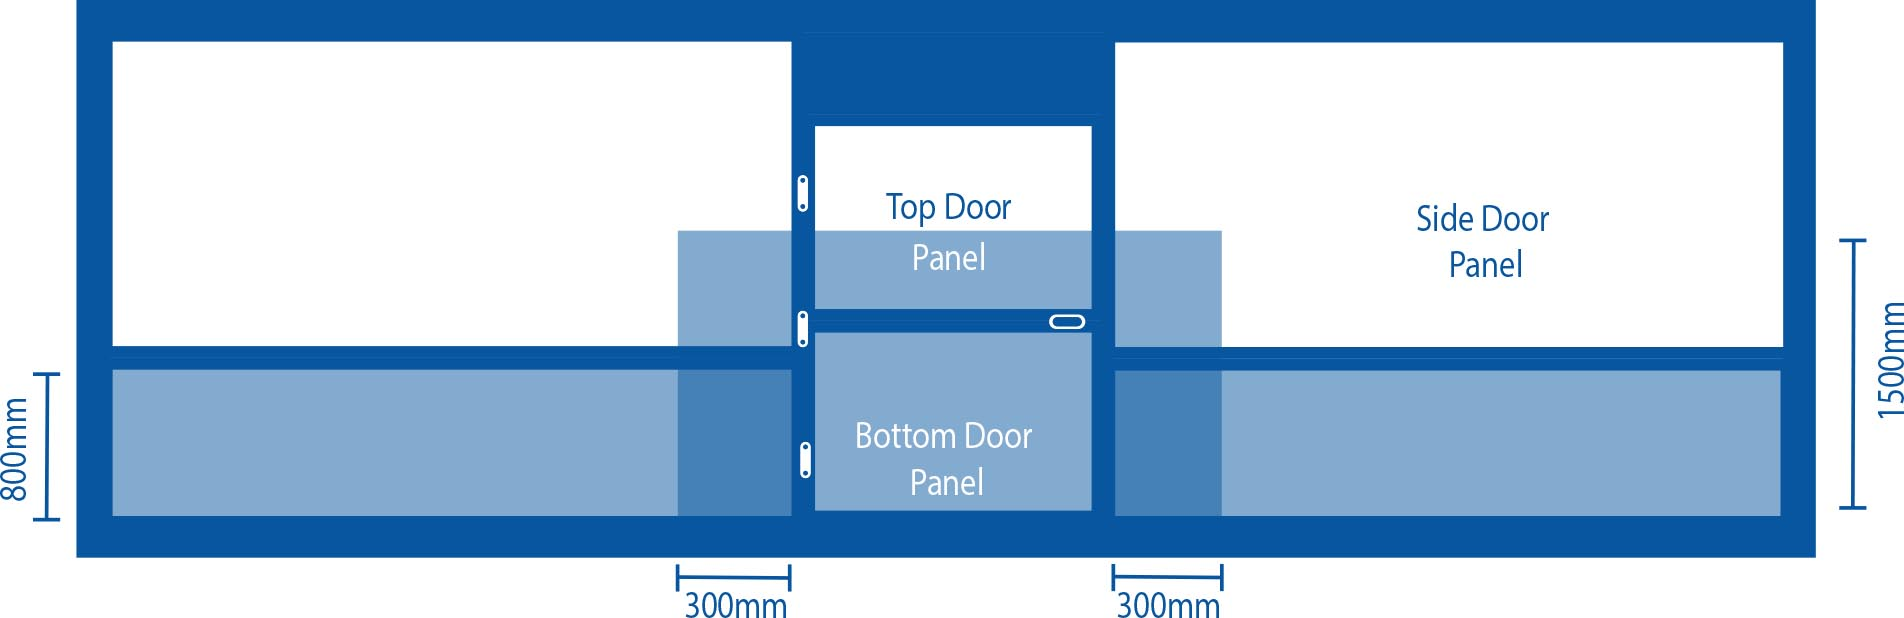 Toughened Glass Installation Diagram